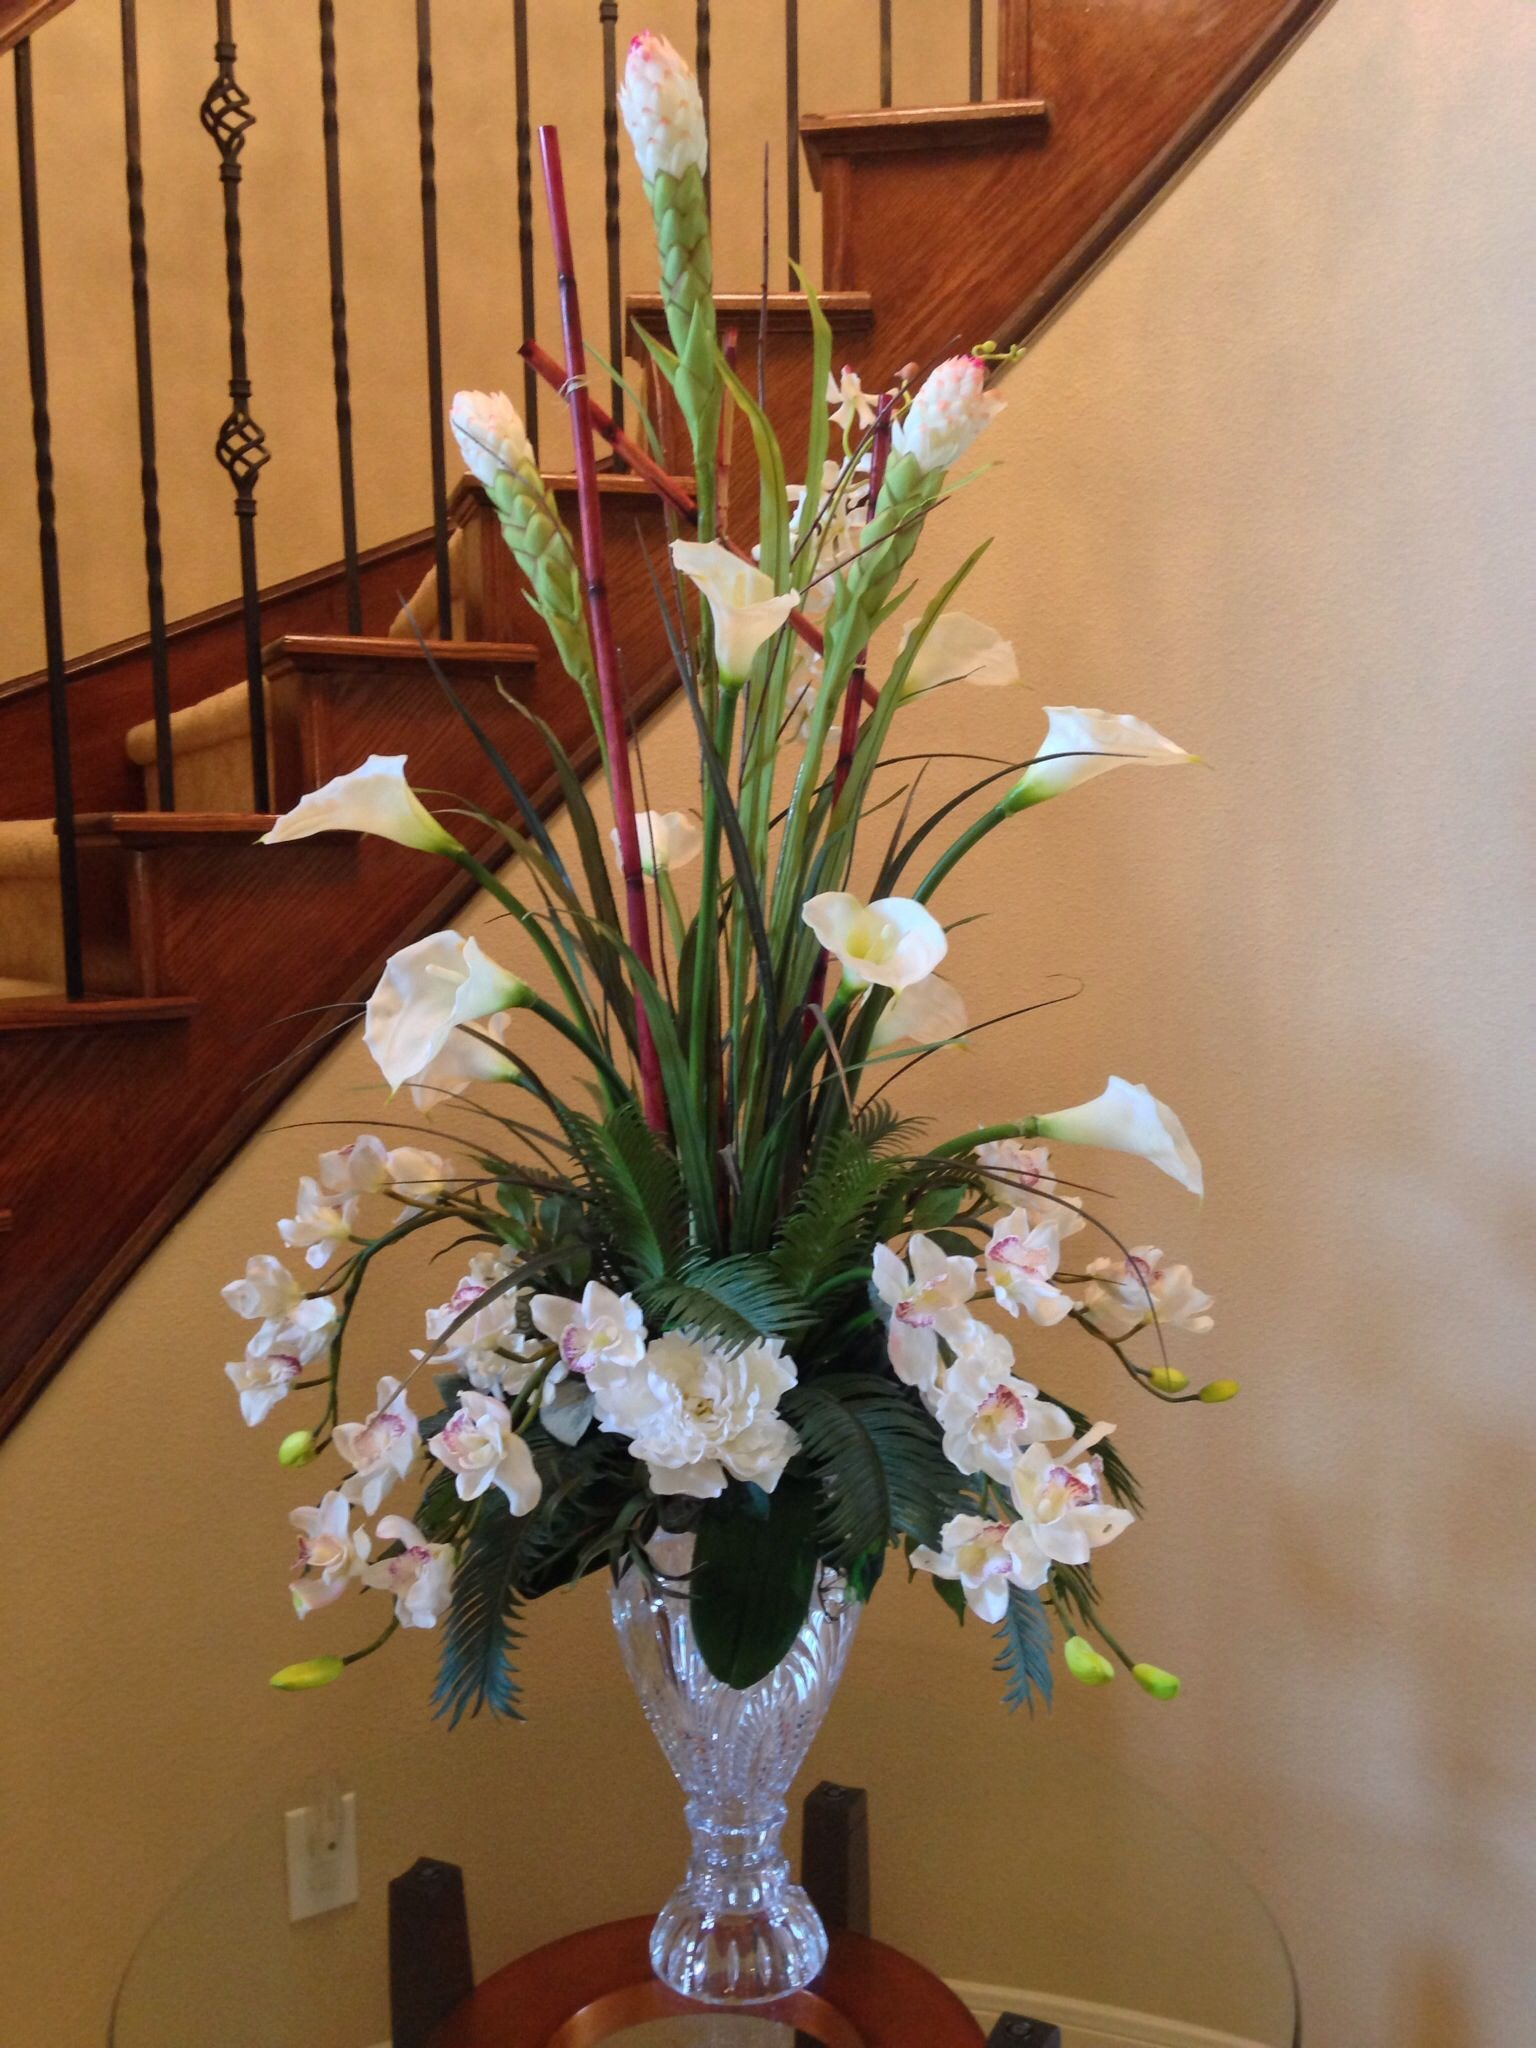 Flower Arrangements for Home Decor Inspirational Calla Lily with orchid Flower Arrangement for Perfect Foyer or Staircase by Arcadia Floral and